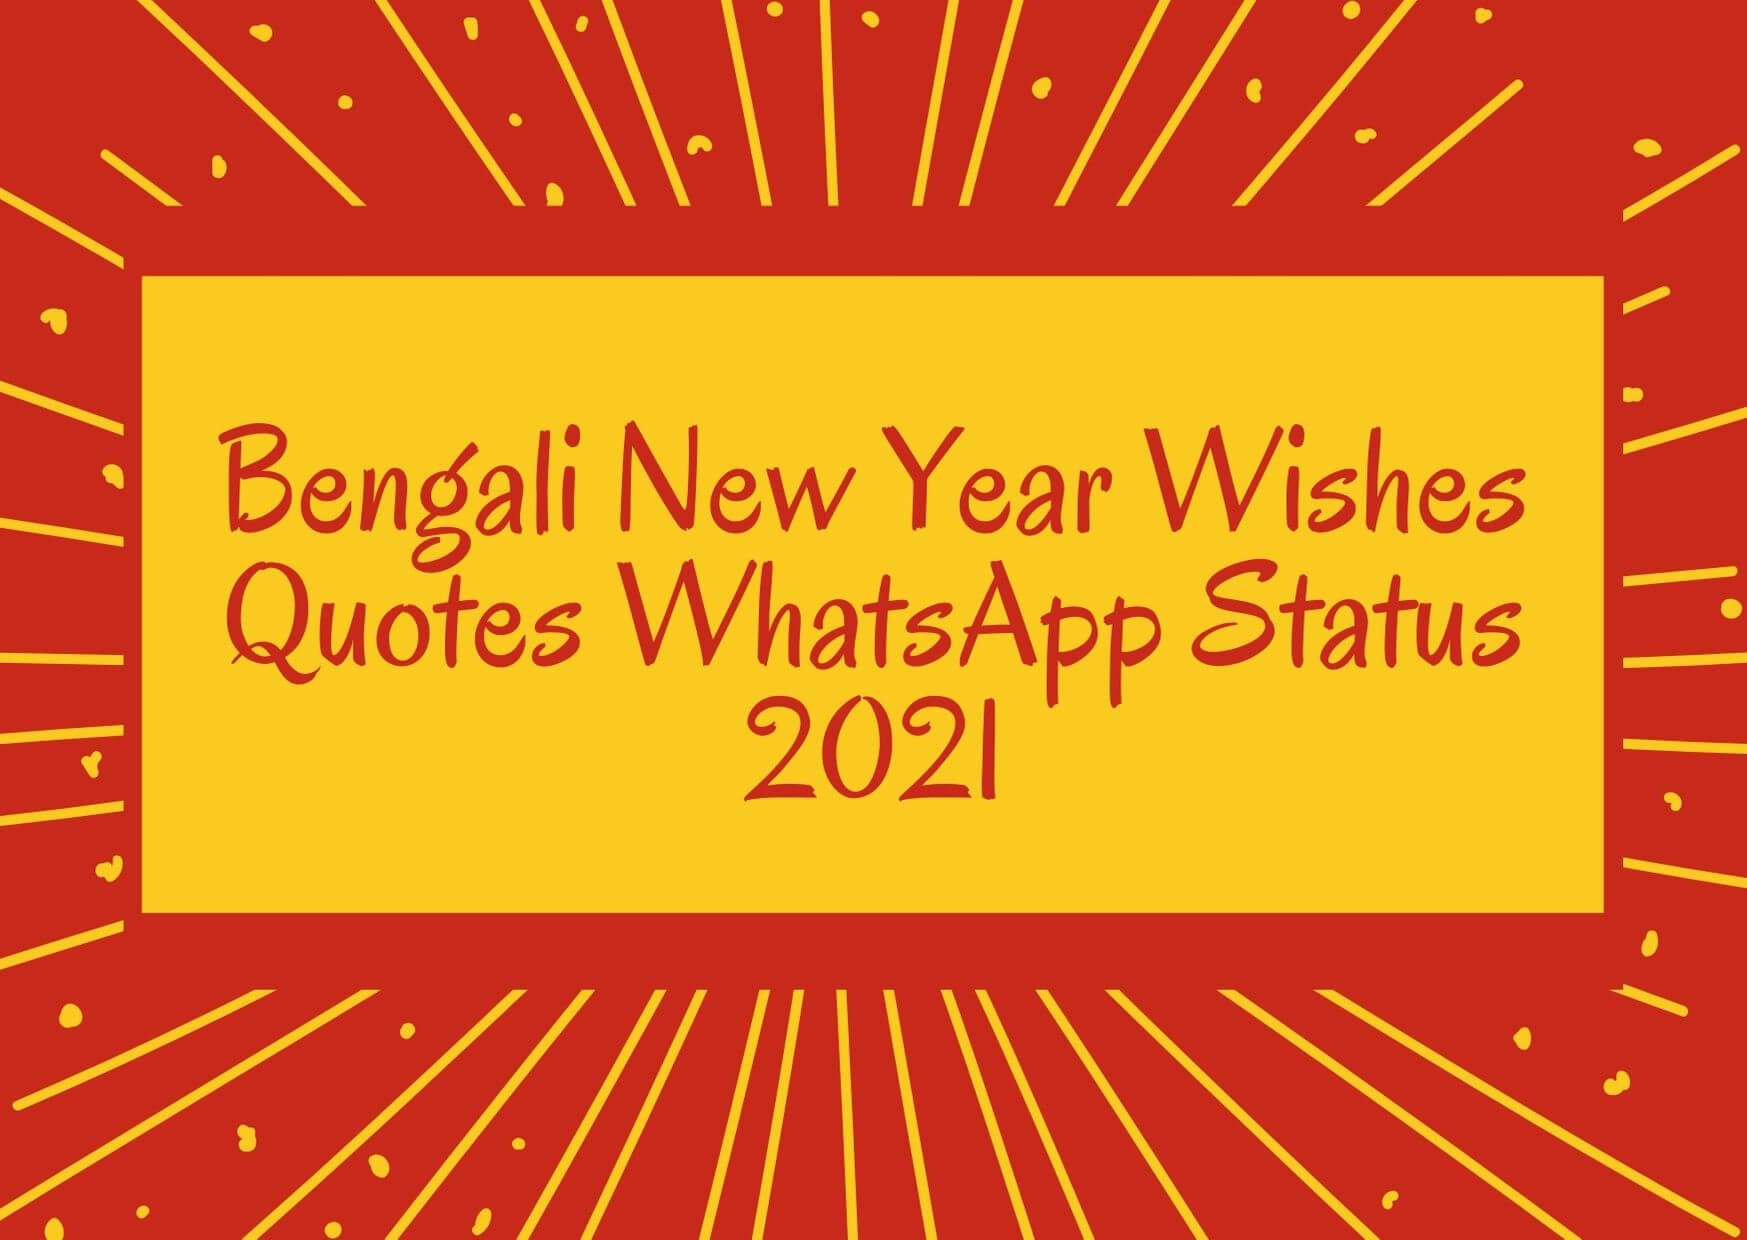 Bengali New Year Wishes, Quotes, Whatsapp Status 2021